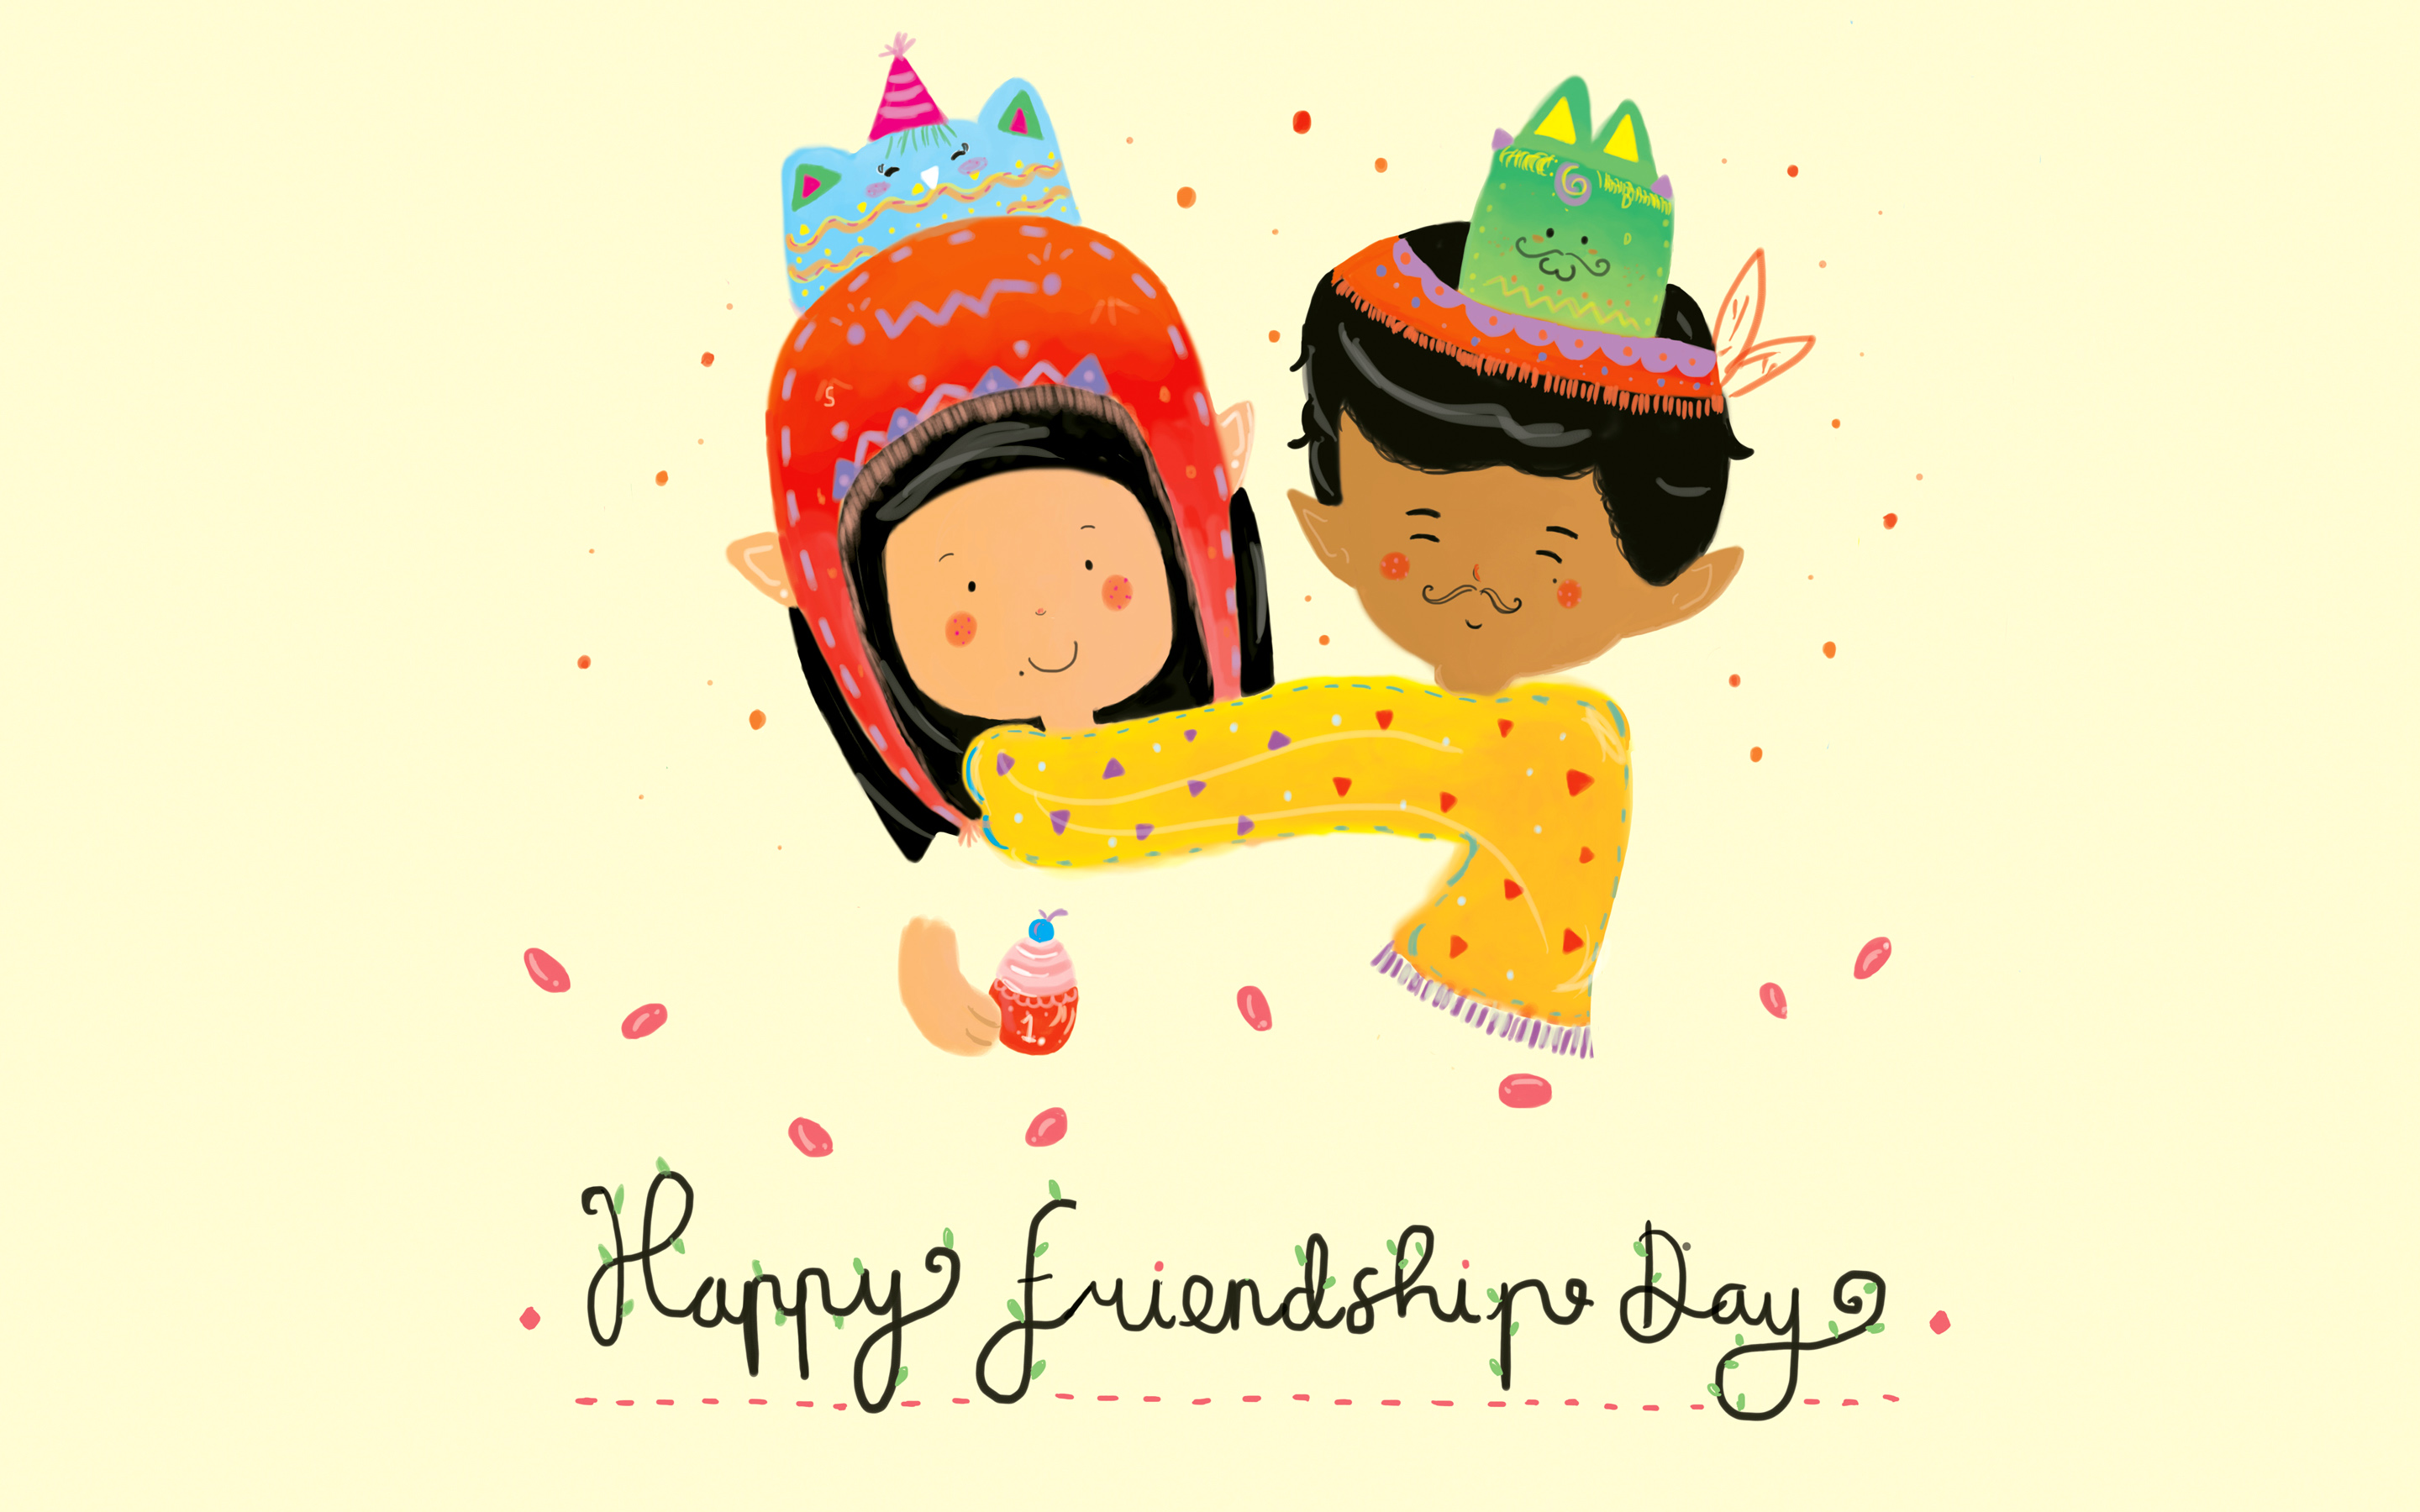 HD Images for Friendship Day